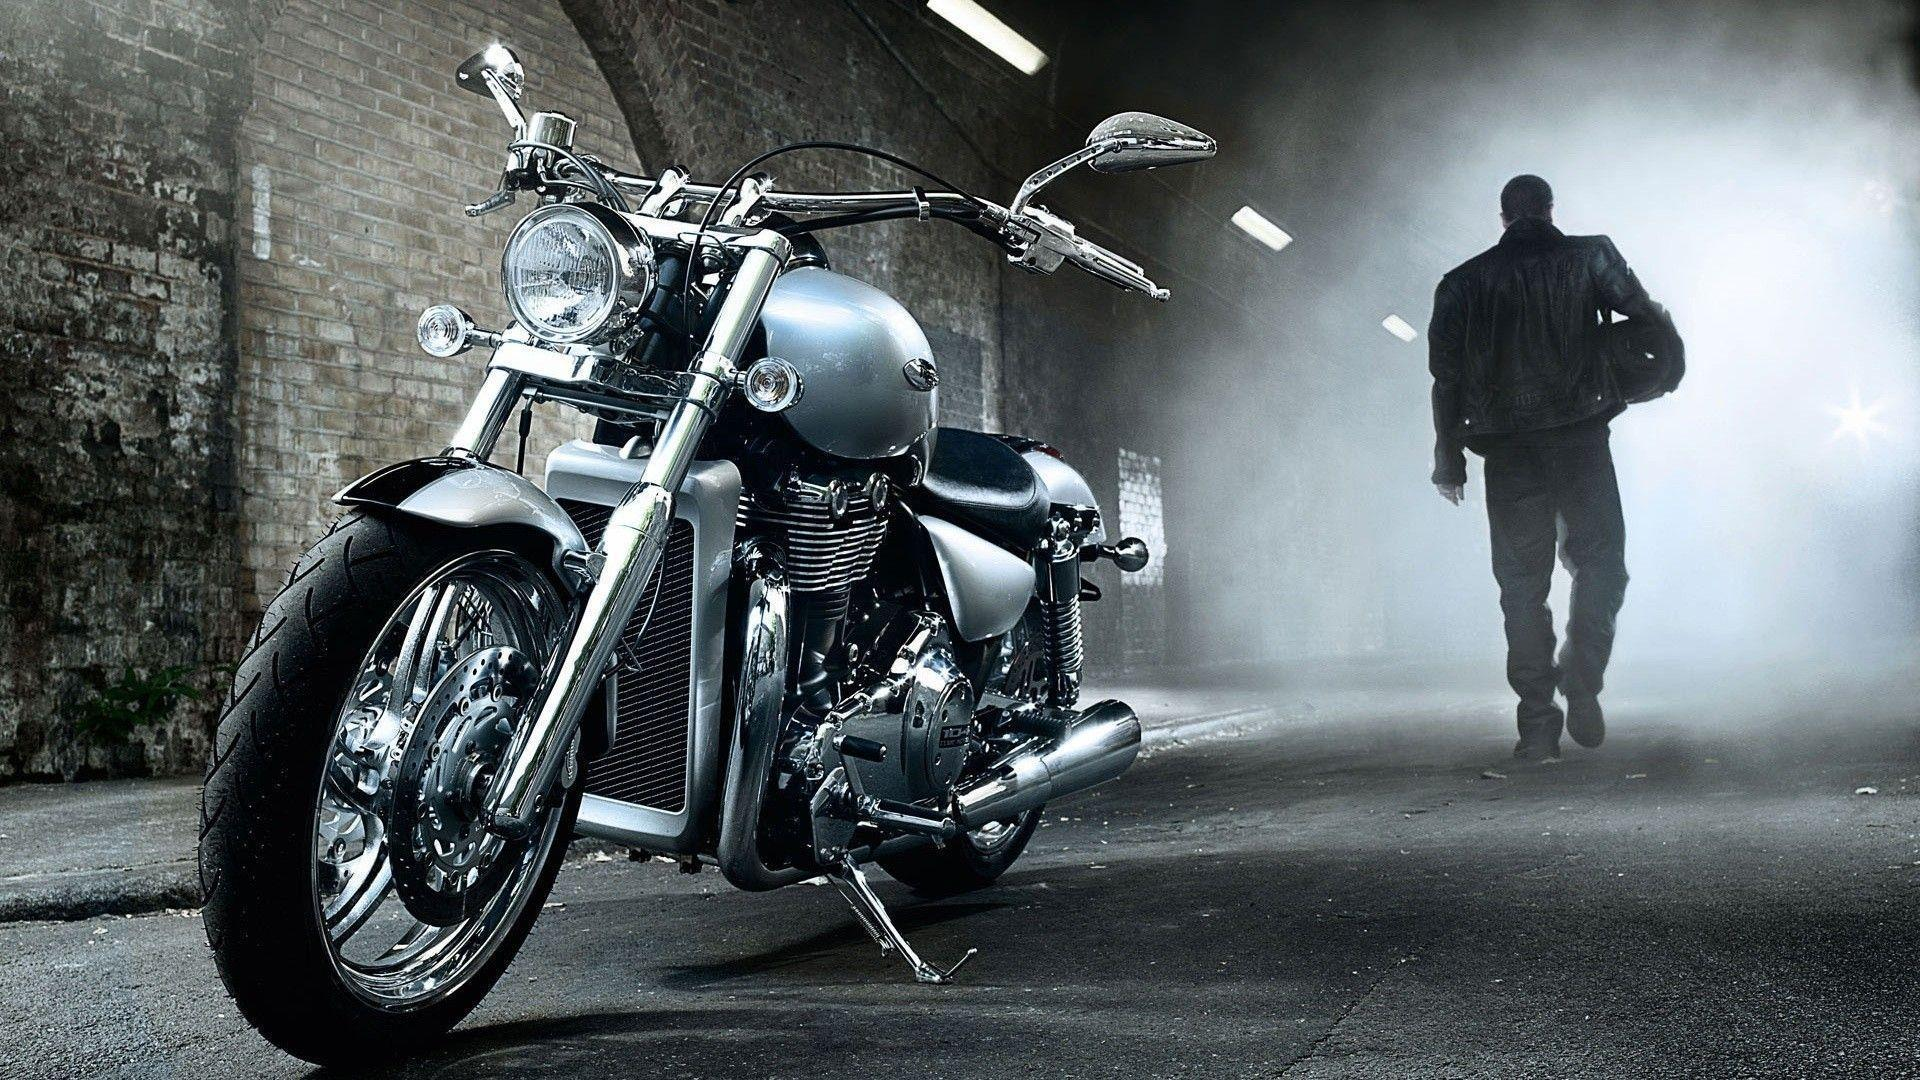 Harley Davidson Wallpaper Download | Wide Wallpapers